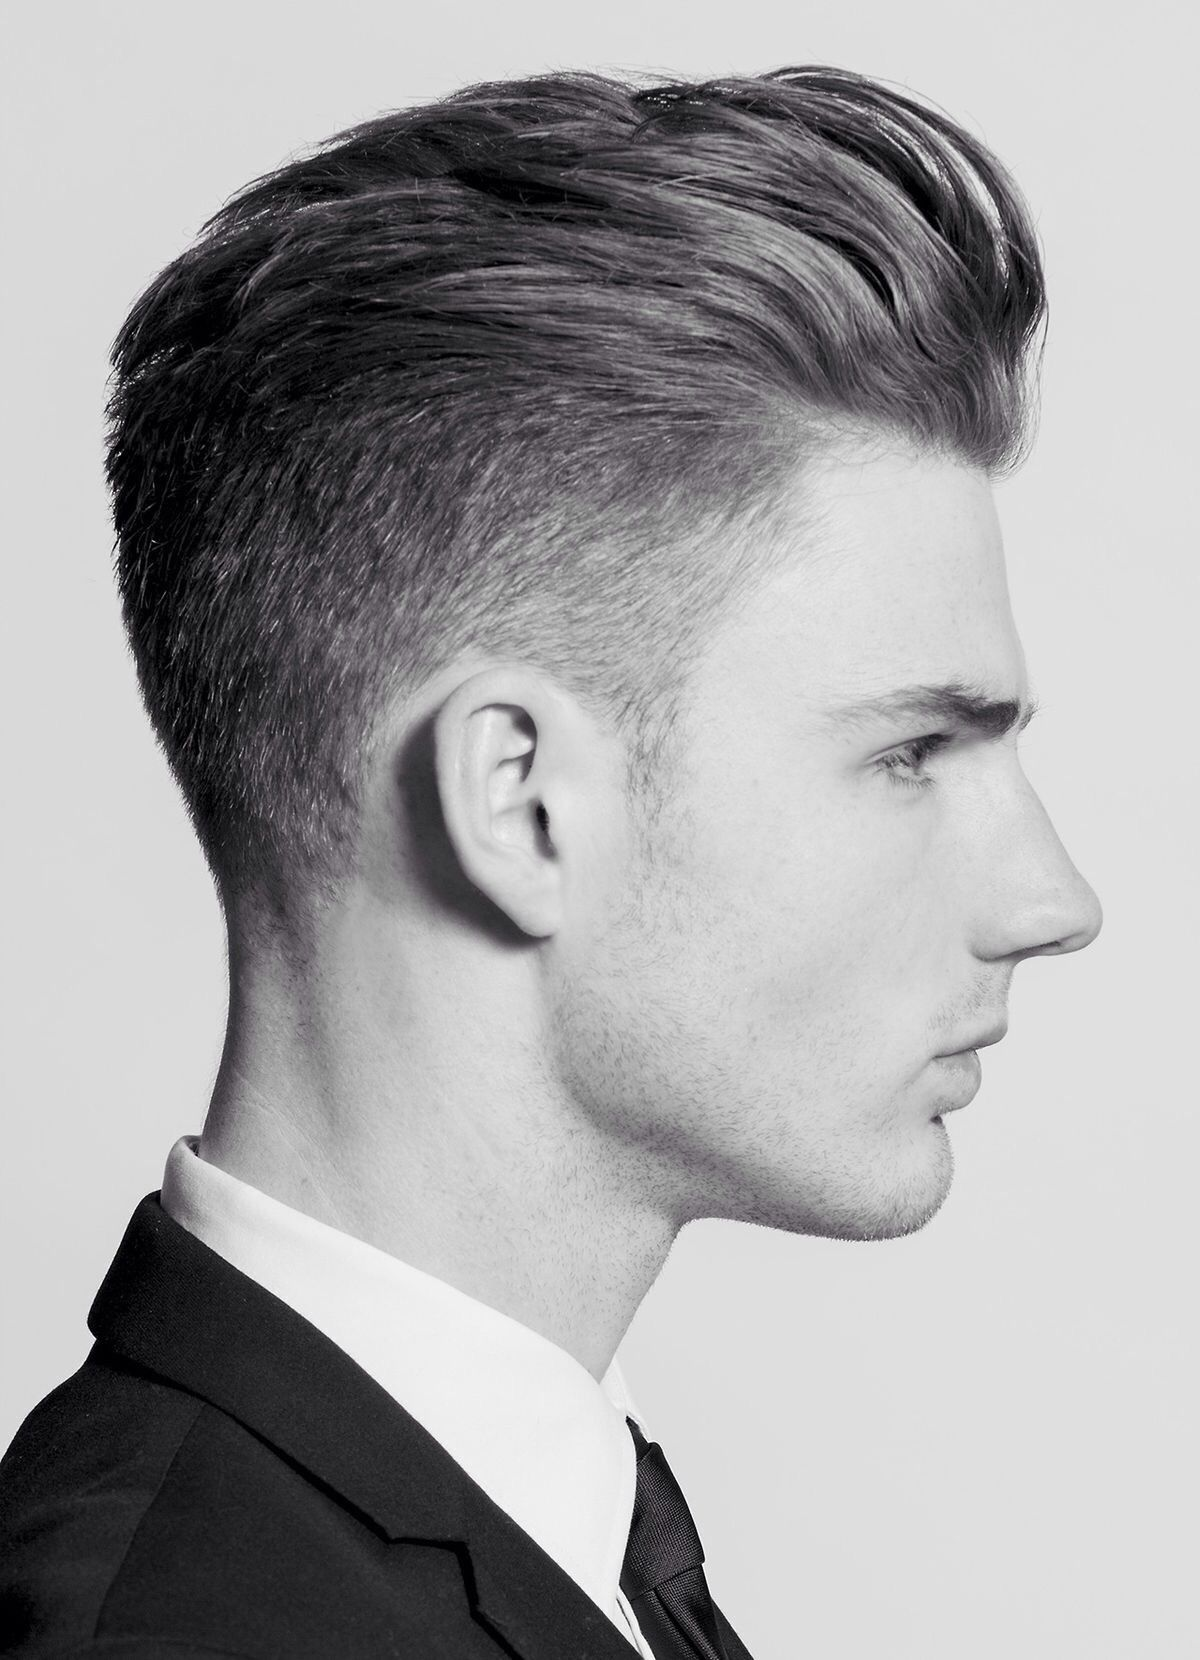 Haircut gays style pinterest haircuts hair style and